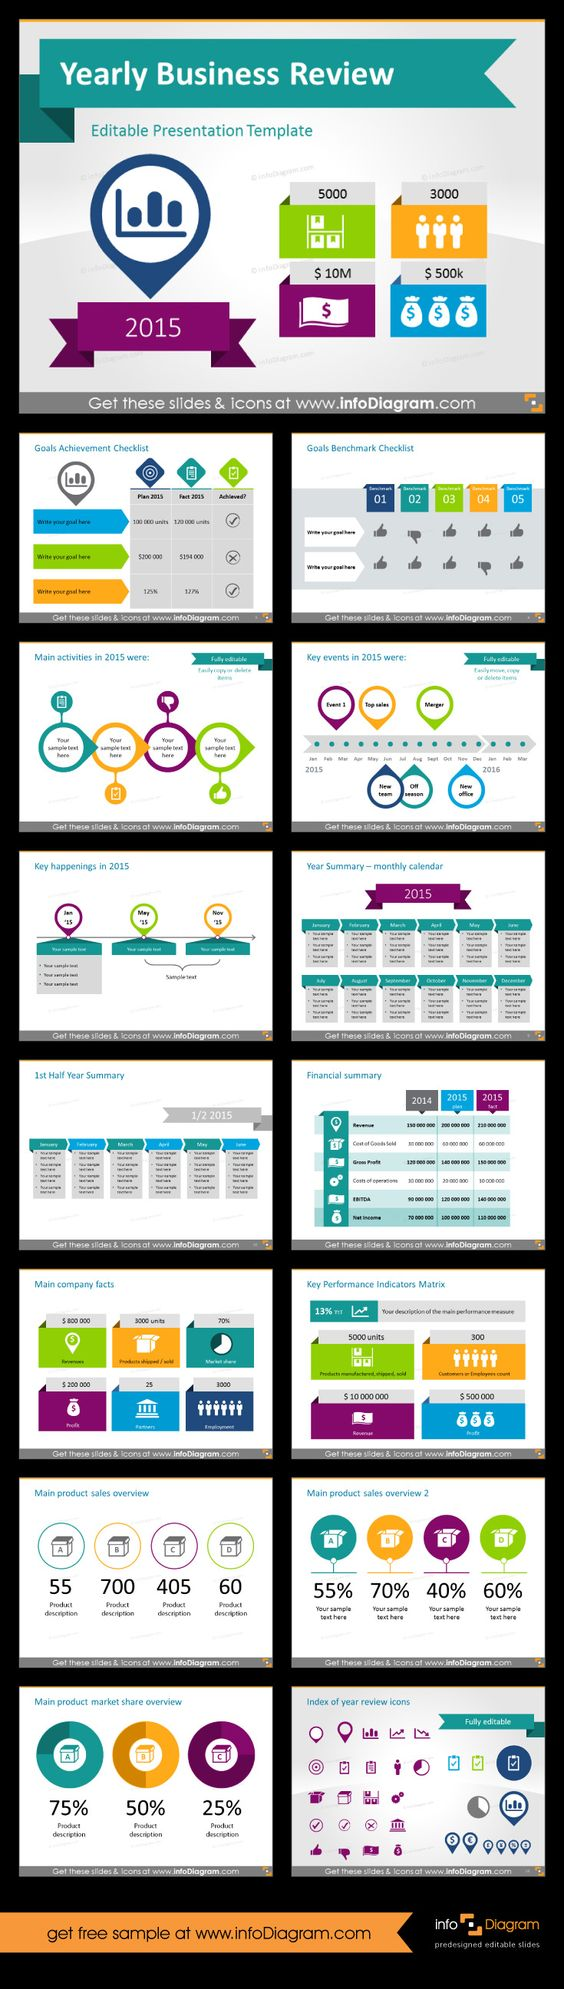 end of year business review presentation template for